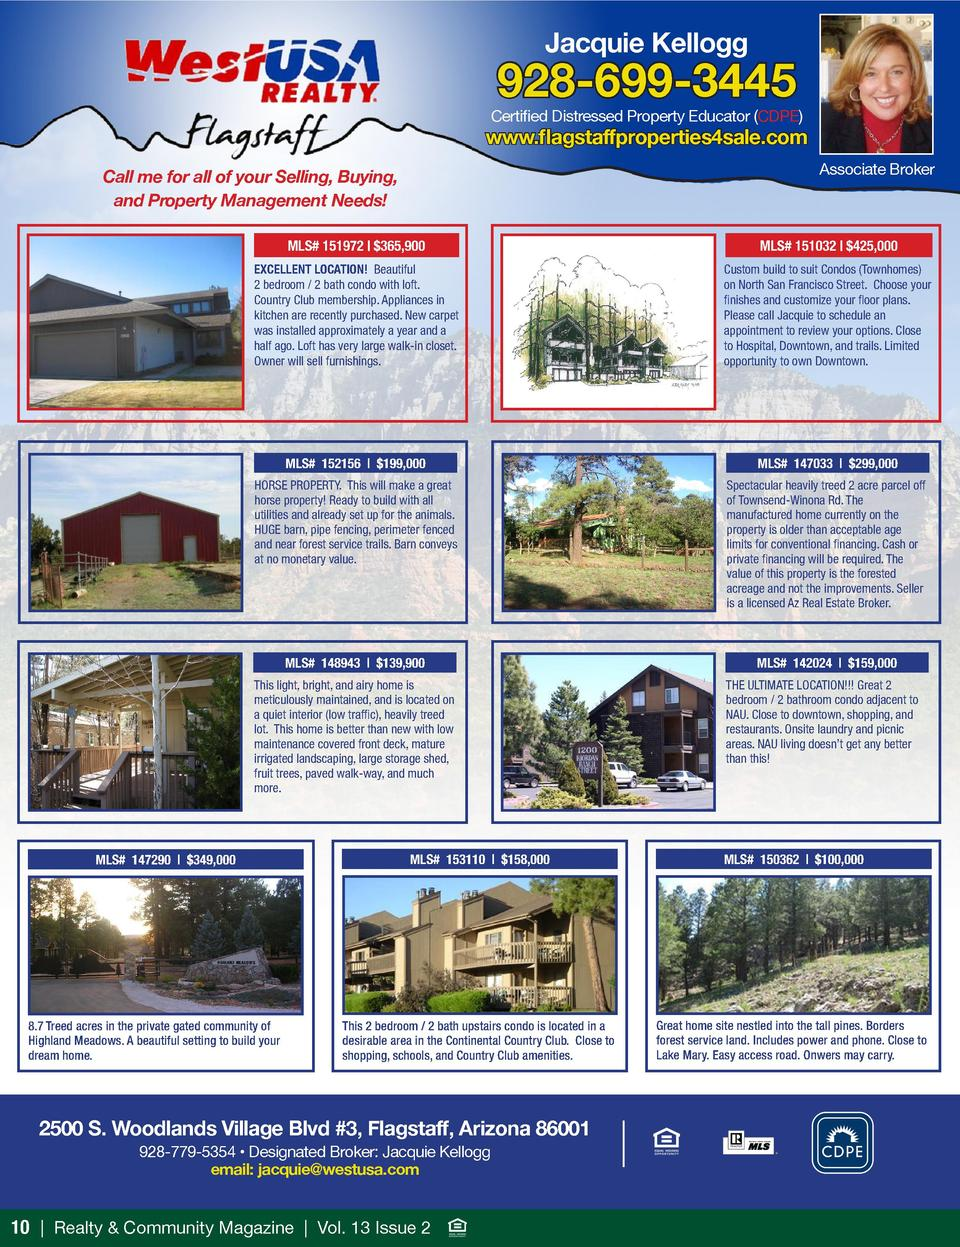 Jacquie Kellogg  928-699-3445  Certified Distressed Property Educator  CDPE   www.flagstaffproperties4sale.com Associate B...